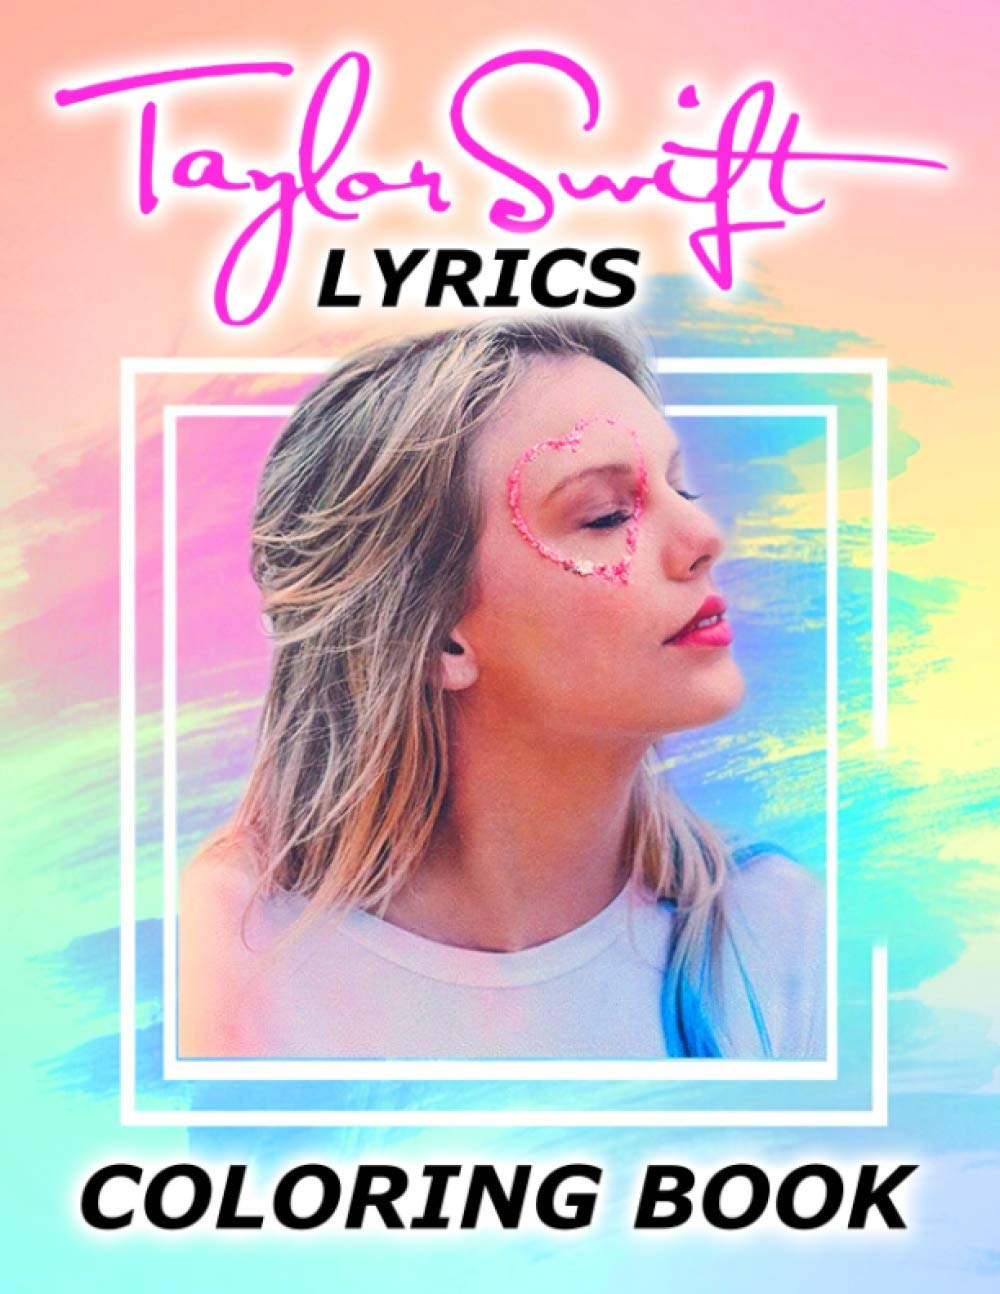 Taylor Swift Lyrics Coloring Book: Gorgeous Present For Taylor Swift Mega Fans, Lots Of Awesome Lyrics Designs To Explore